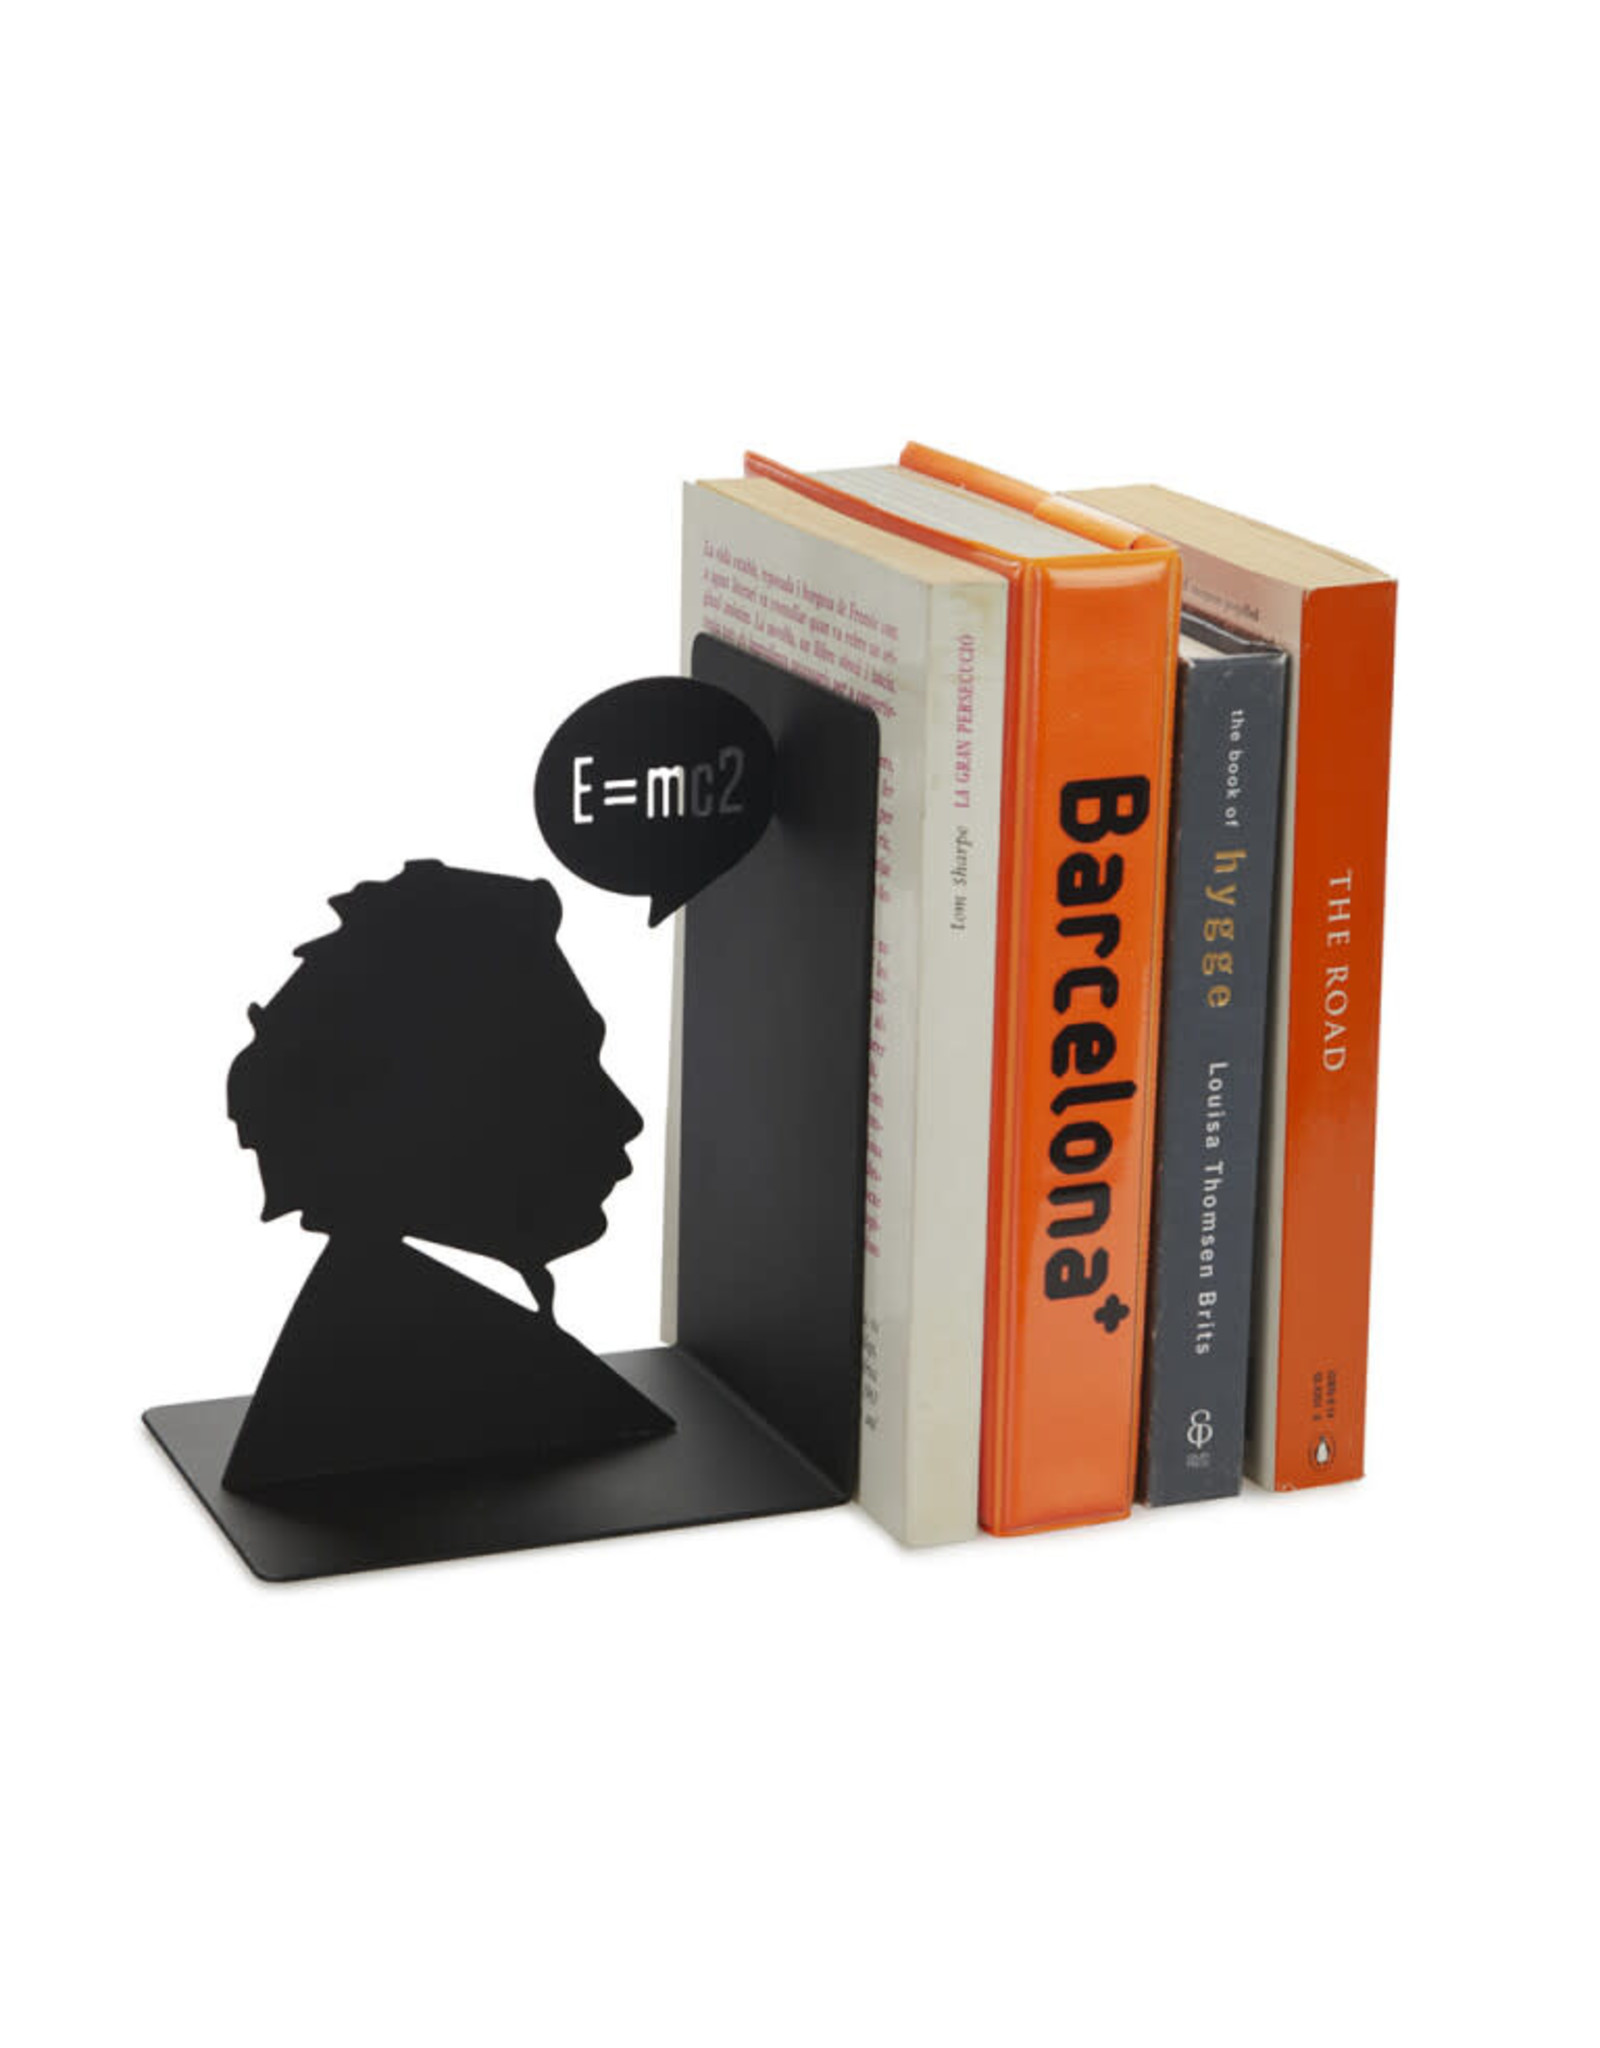 bookend in the shape of Einstein